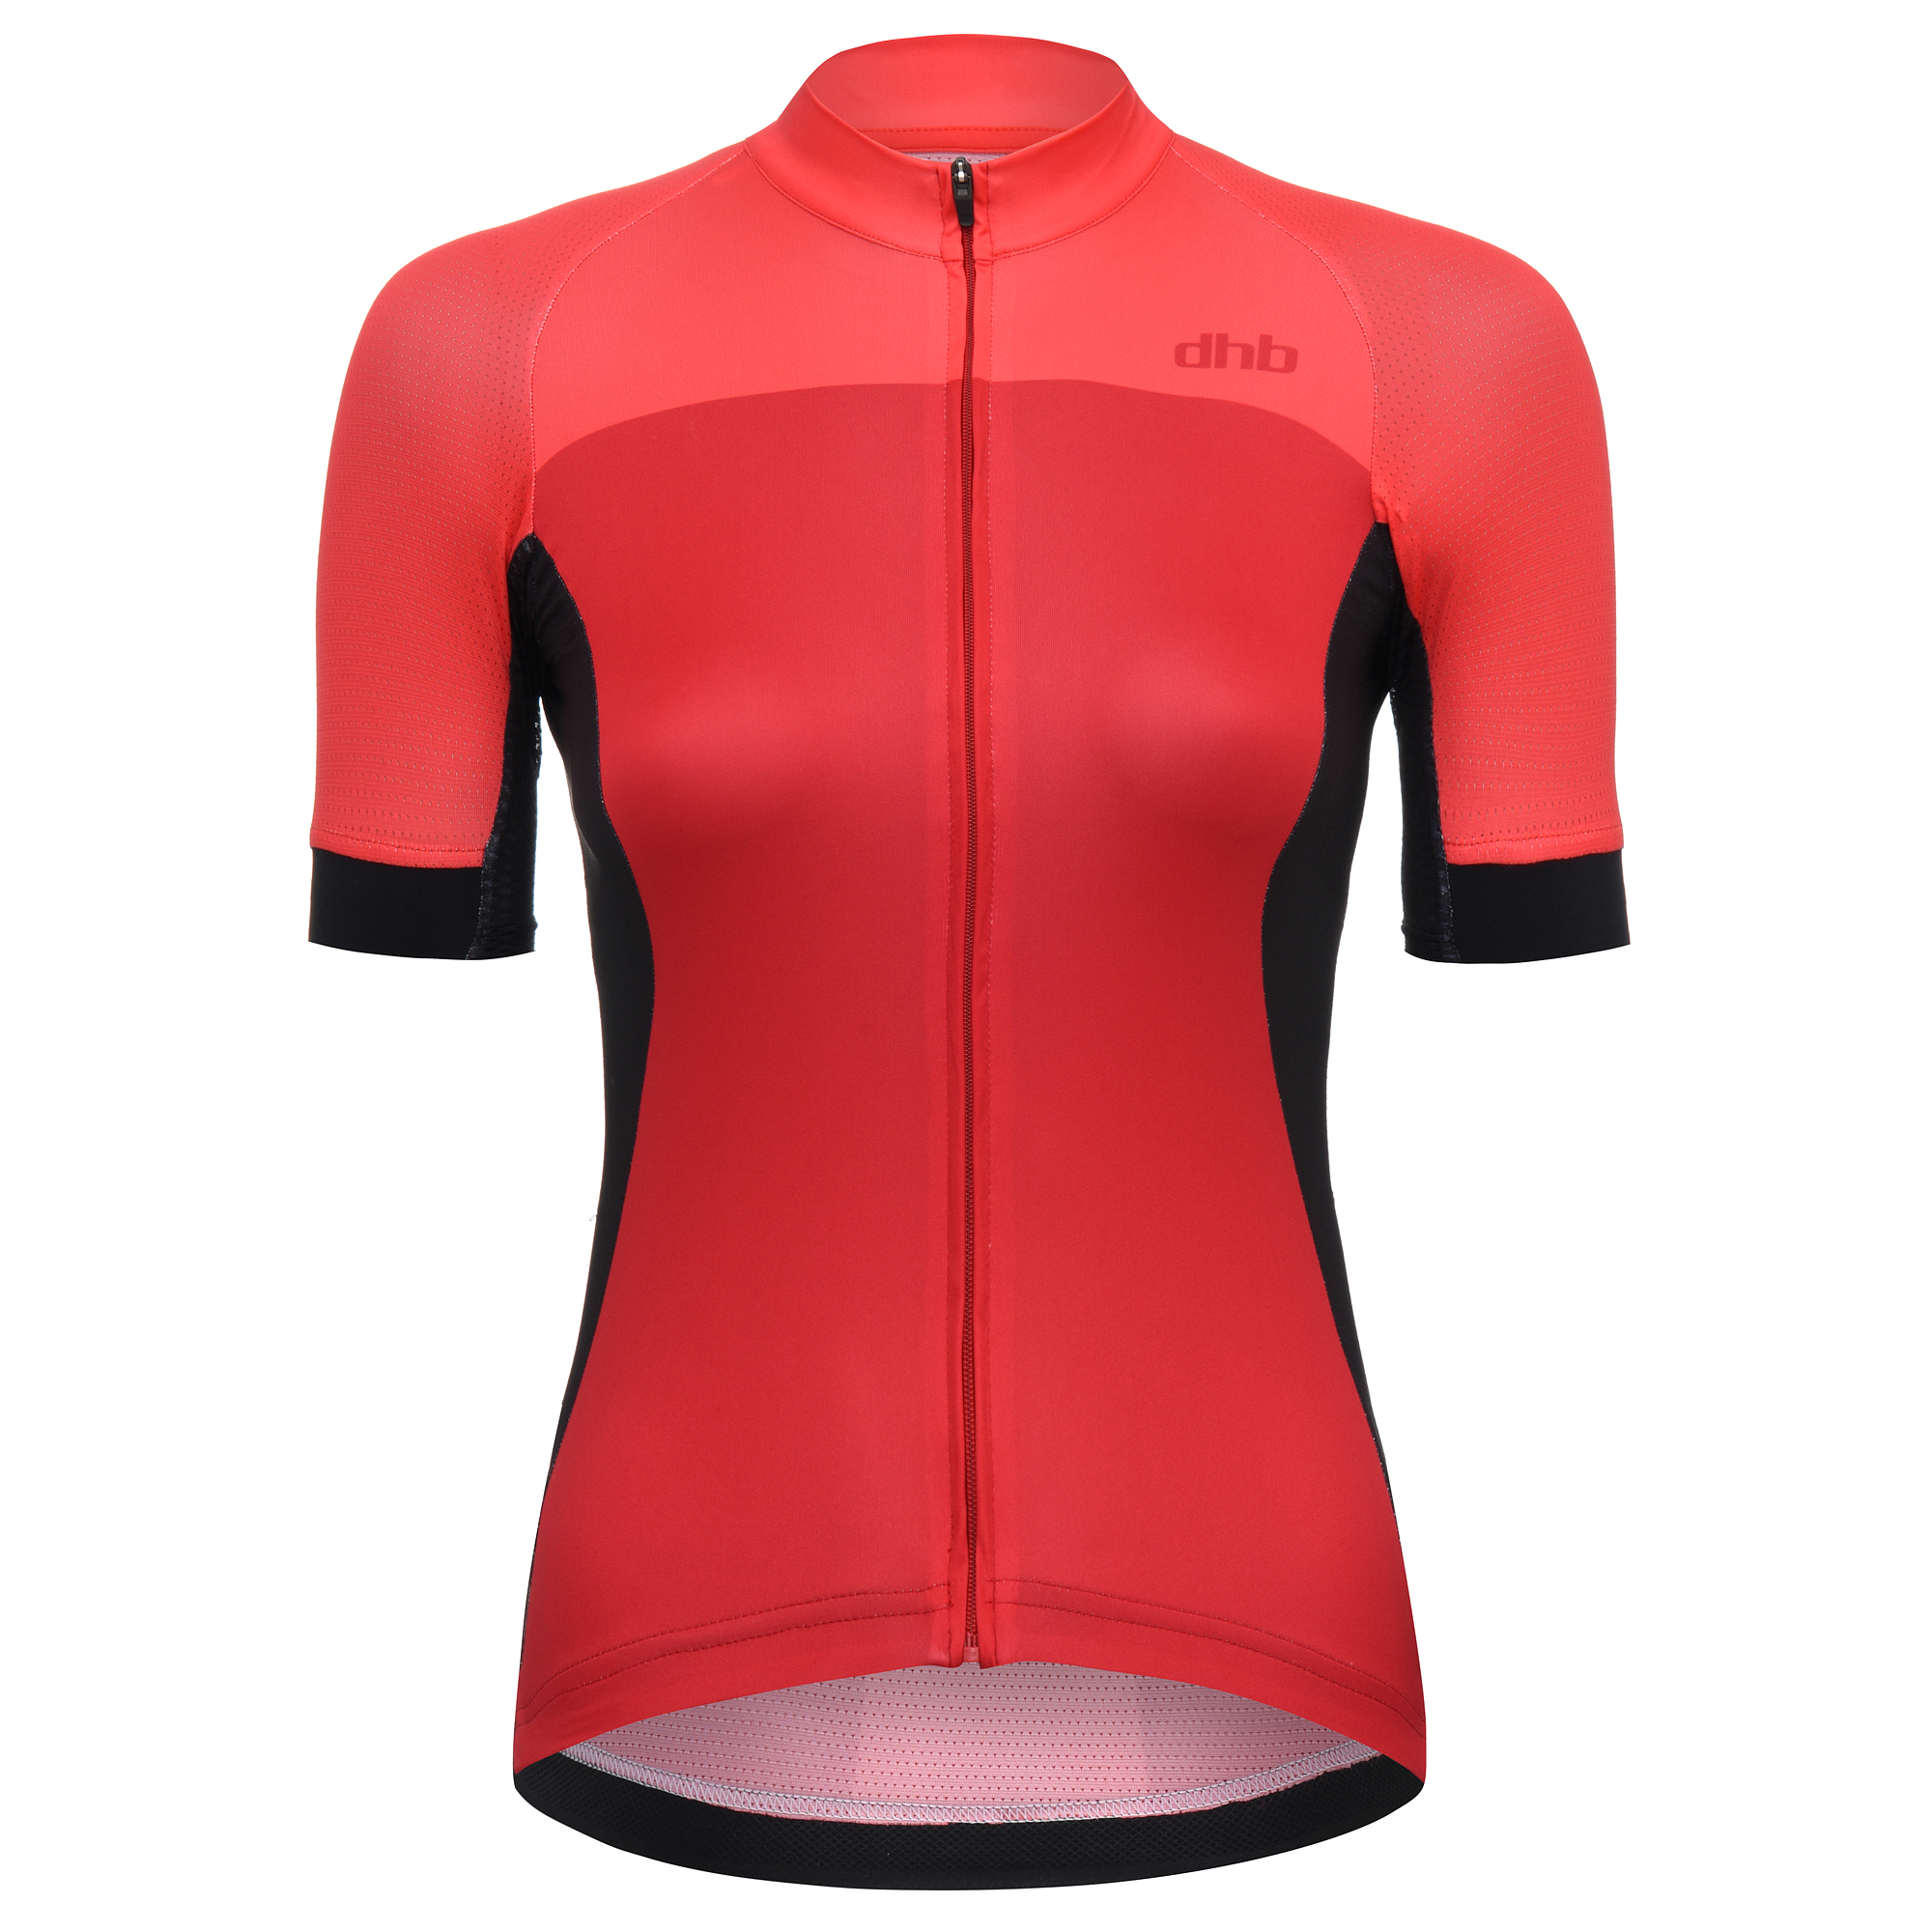 dhb Aeron Women's Speed Short Sleeve Jersey | Jerseys